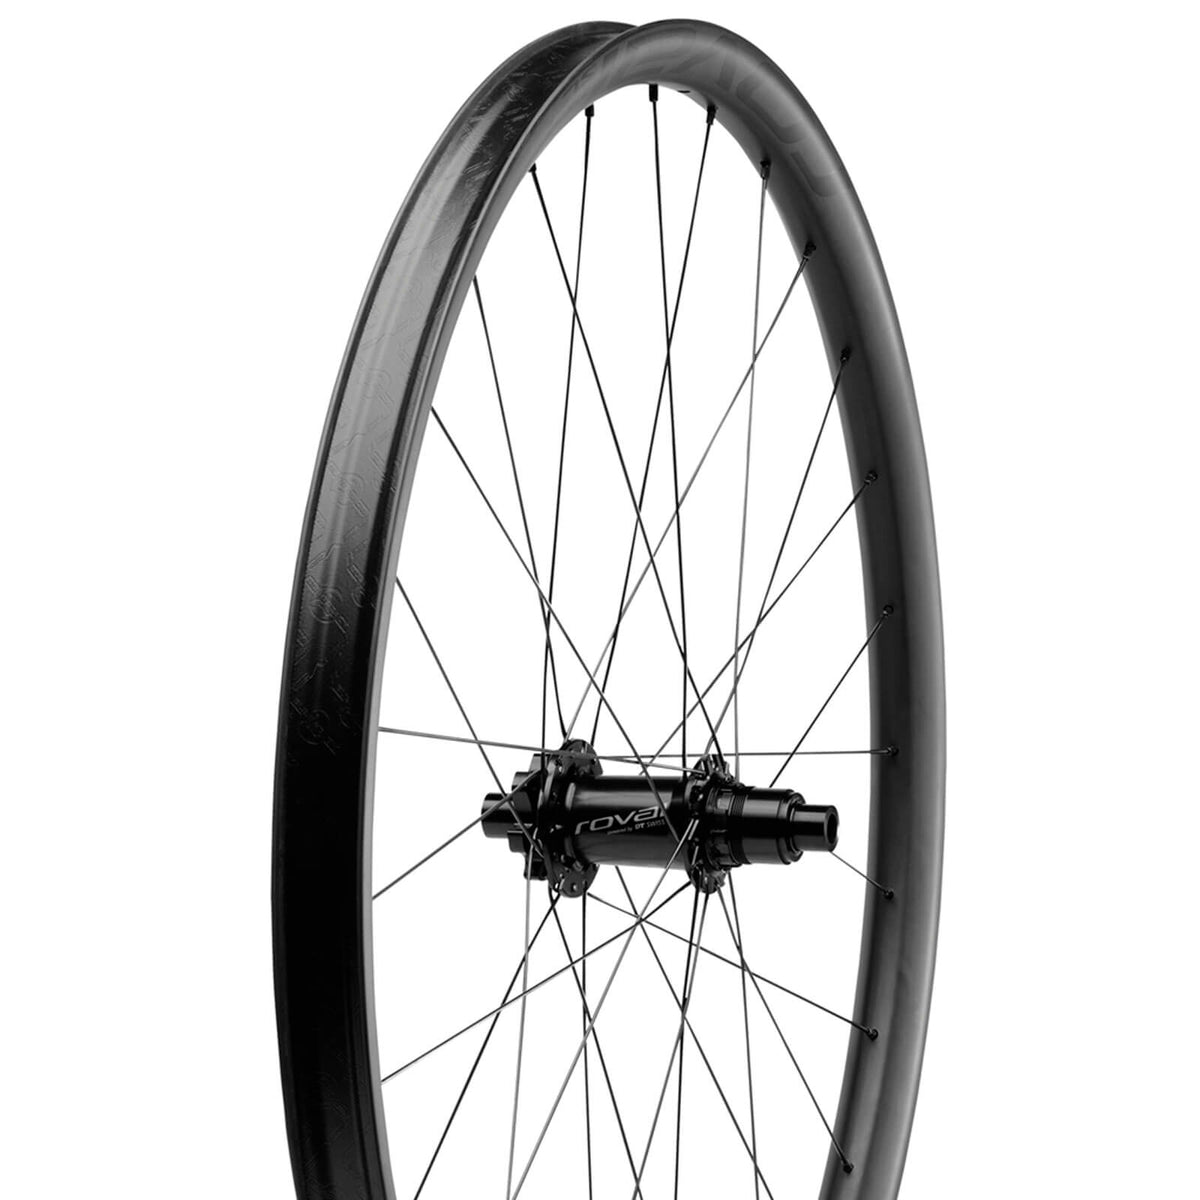 Traverse SL rear wheel